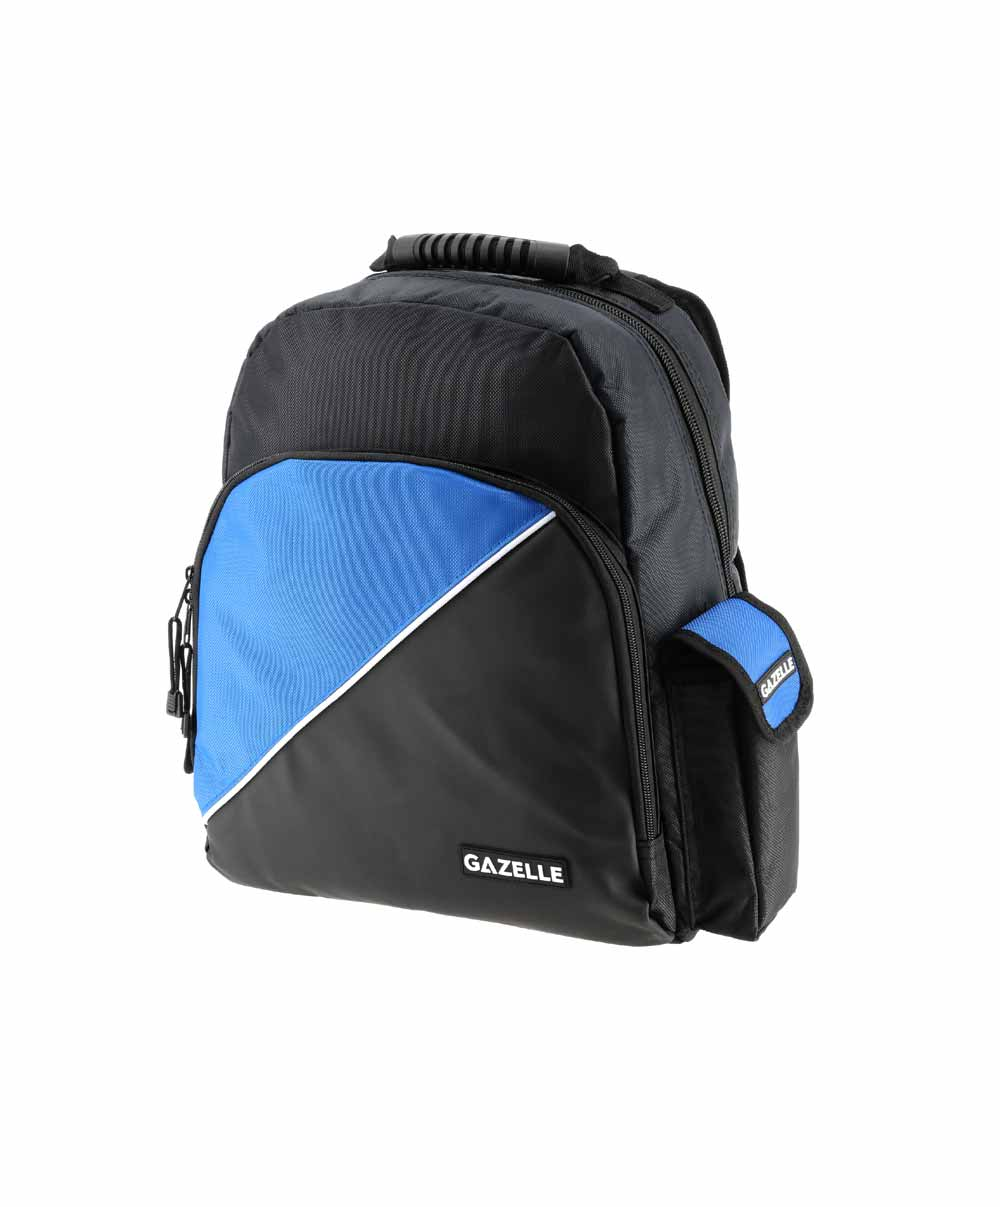 GAZELLE G8213 - 13In Technician Rucksack